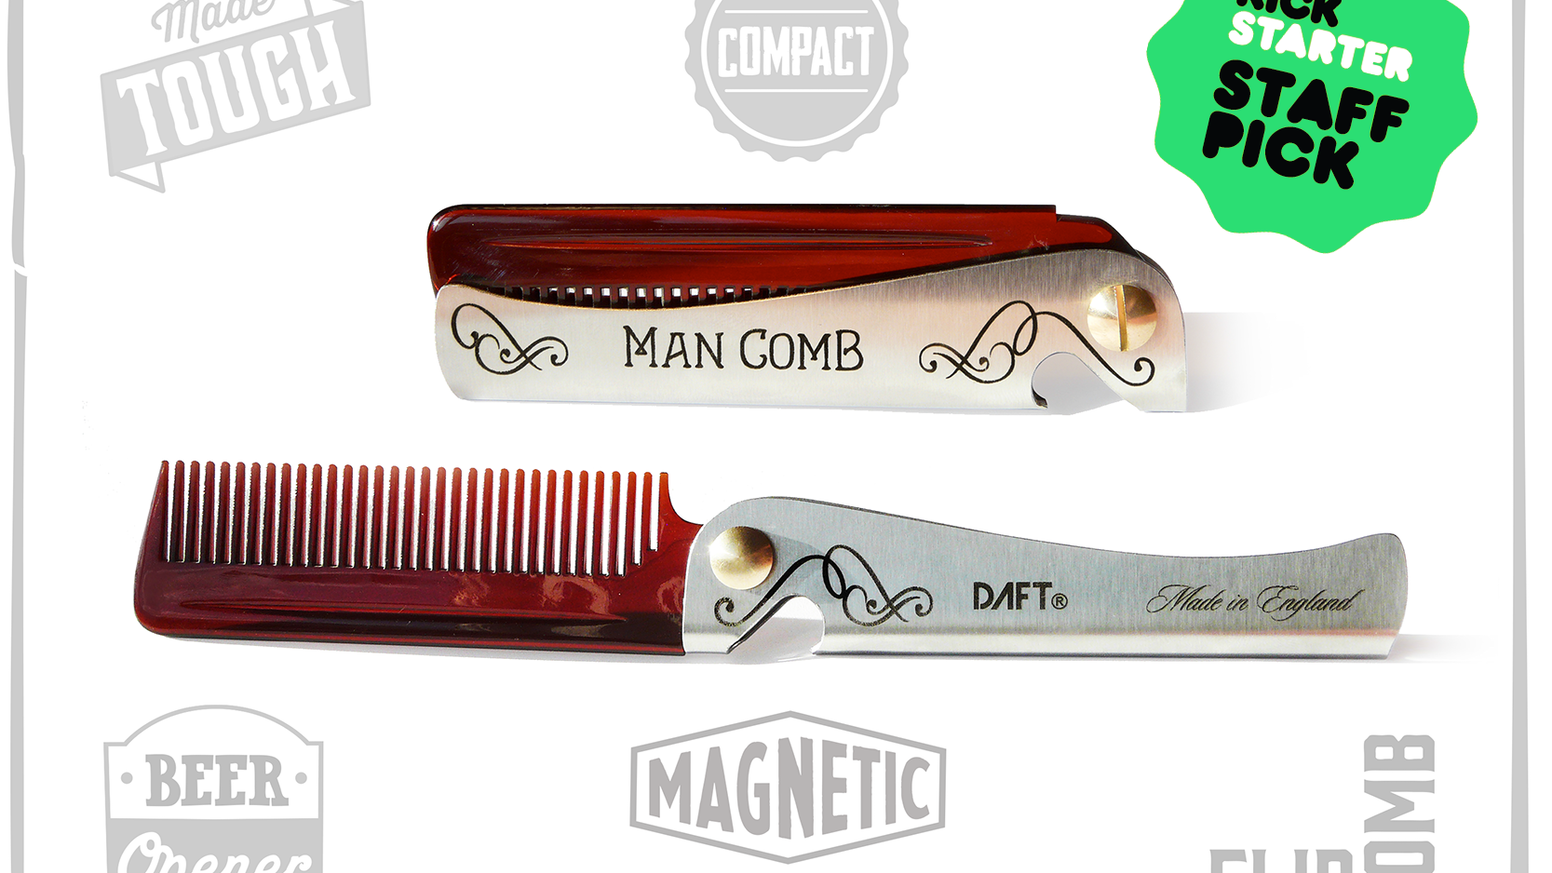 A tough & compact flip comb. The ultimate tool for your hair & beard... Custom options available.